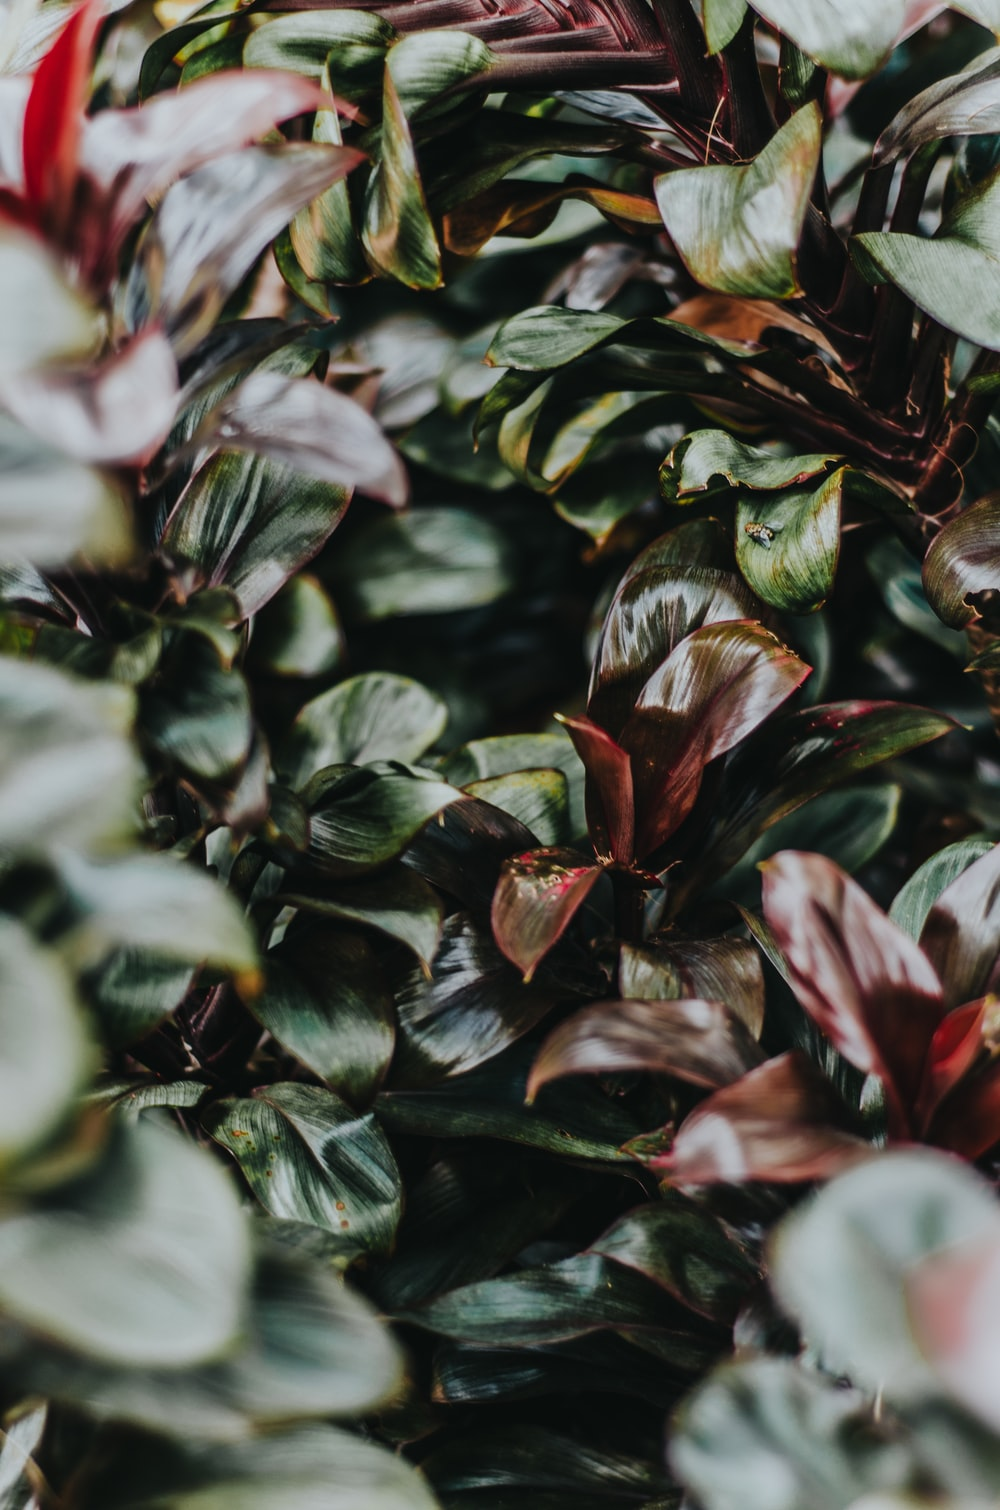 selective focus photography of maroon and green leafed plant